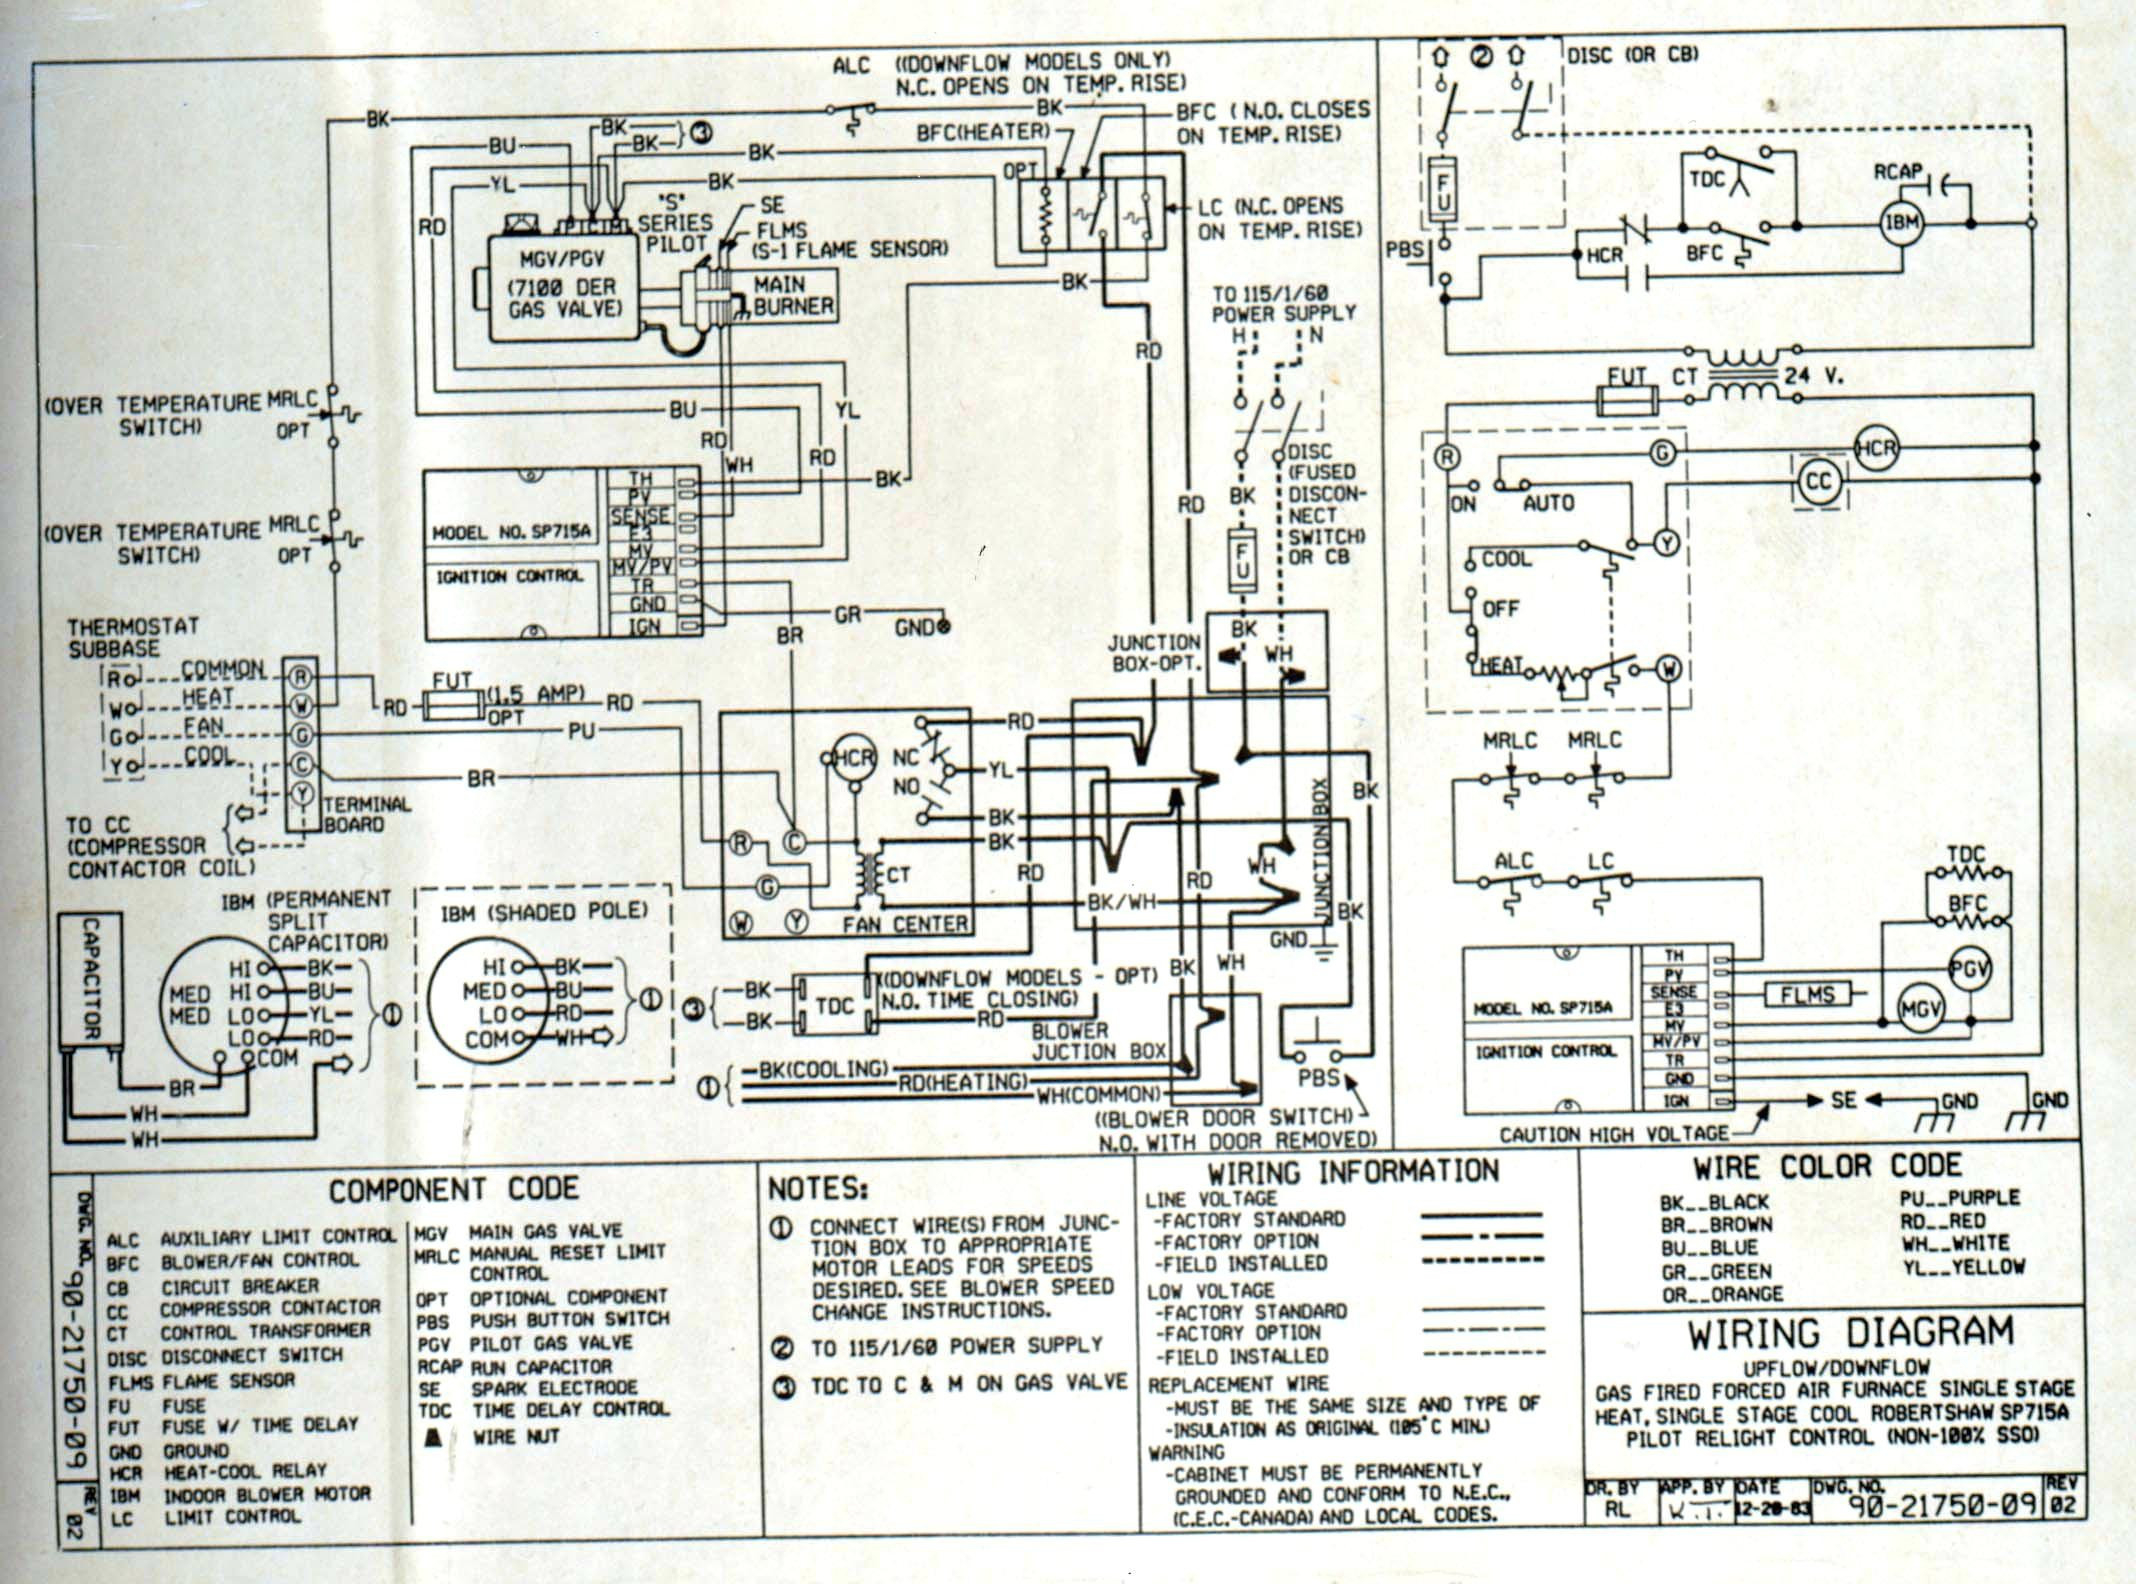 Gas Furnace Schematic Wiring Diagram - In-Depth Wiring Diagrams •